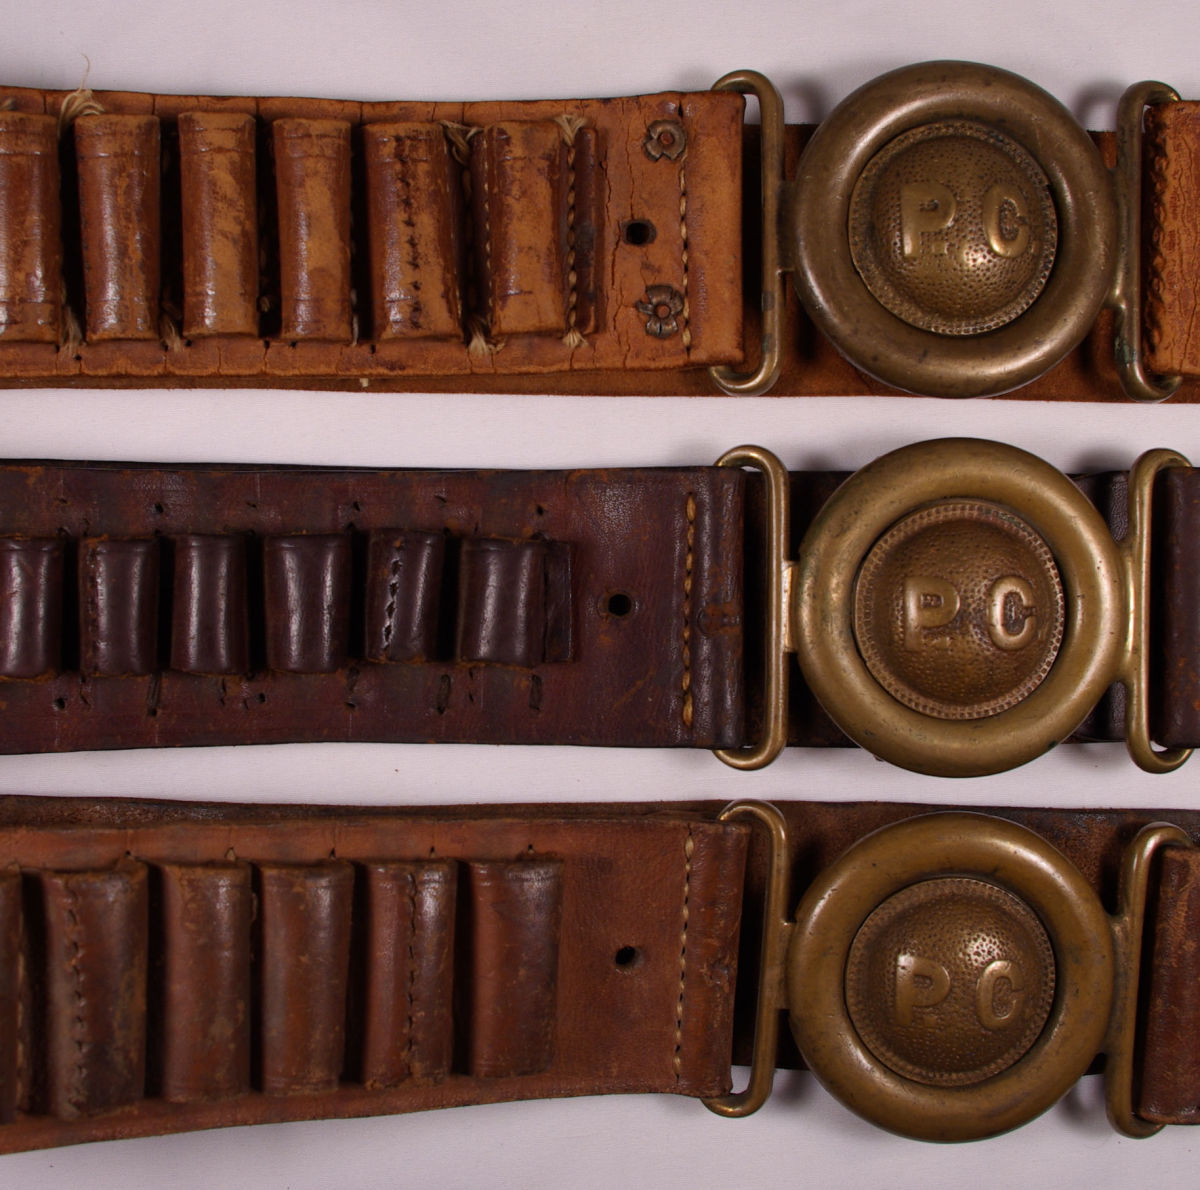 This close-up photo shows stitching holes on the belts that were converted fromshot shells to various rifle or pistol cartridges or combinations.